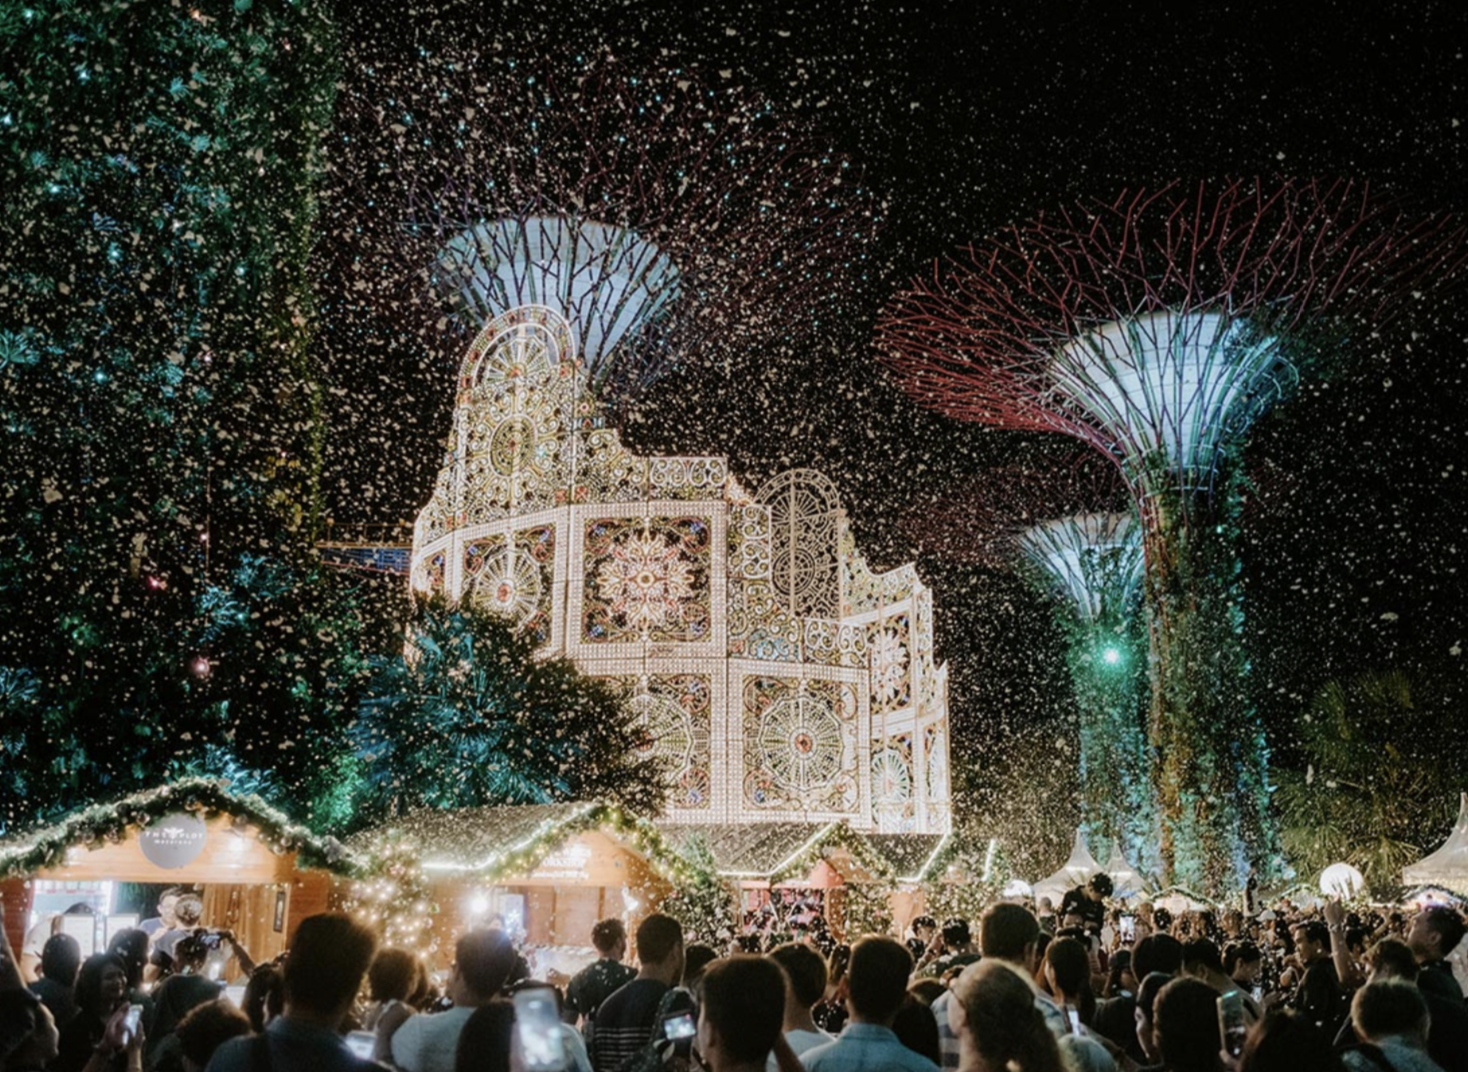 Grab your cameras and get ready for some picture perfect moments as you experience the wonders of 'snow' against a stunning backdrop of luminarie light sculptures and the Supertrees daily in the heart of Gardens by the Bay. Photo courtesy: Christmas Wonderland